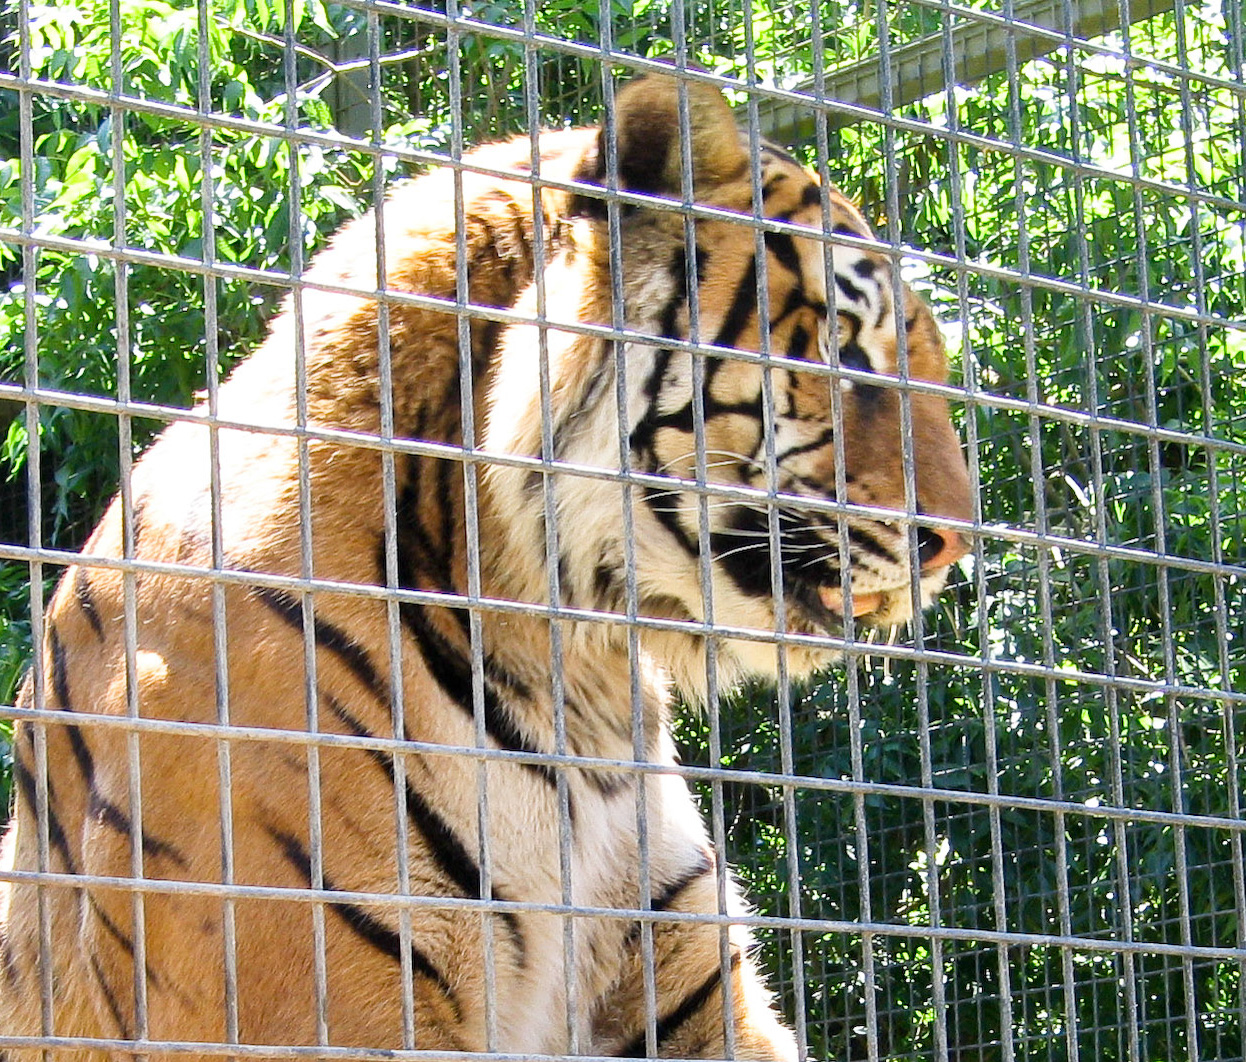 Do zoos help conservation?